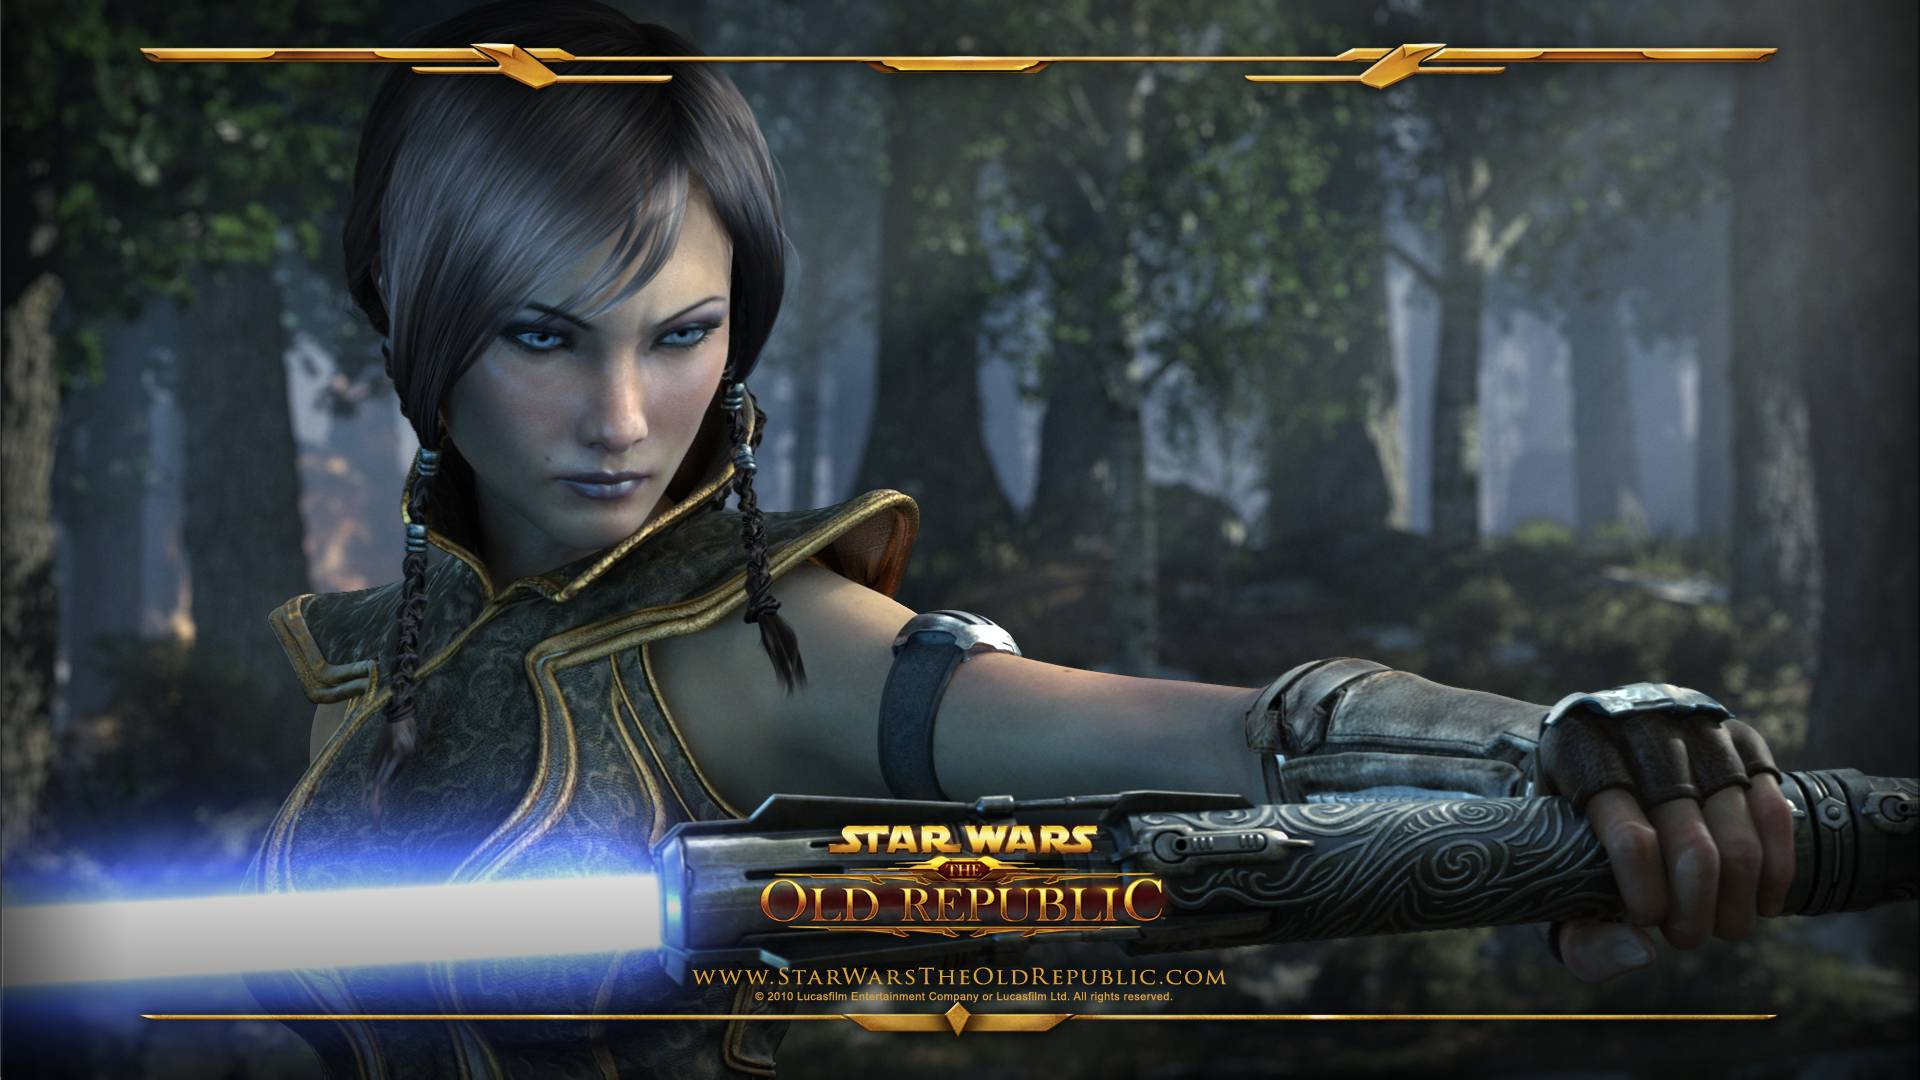 Star Wars The Old Republic wallpaper 12 1920x1080